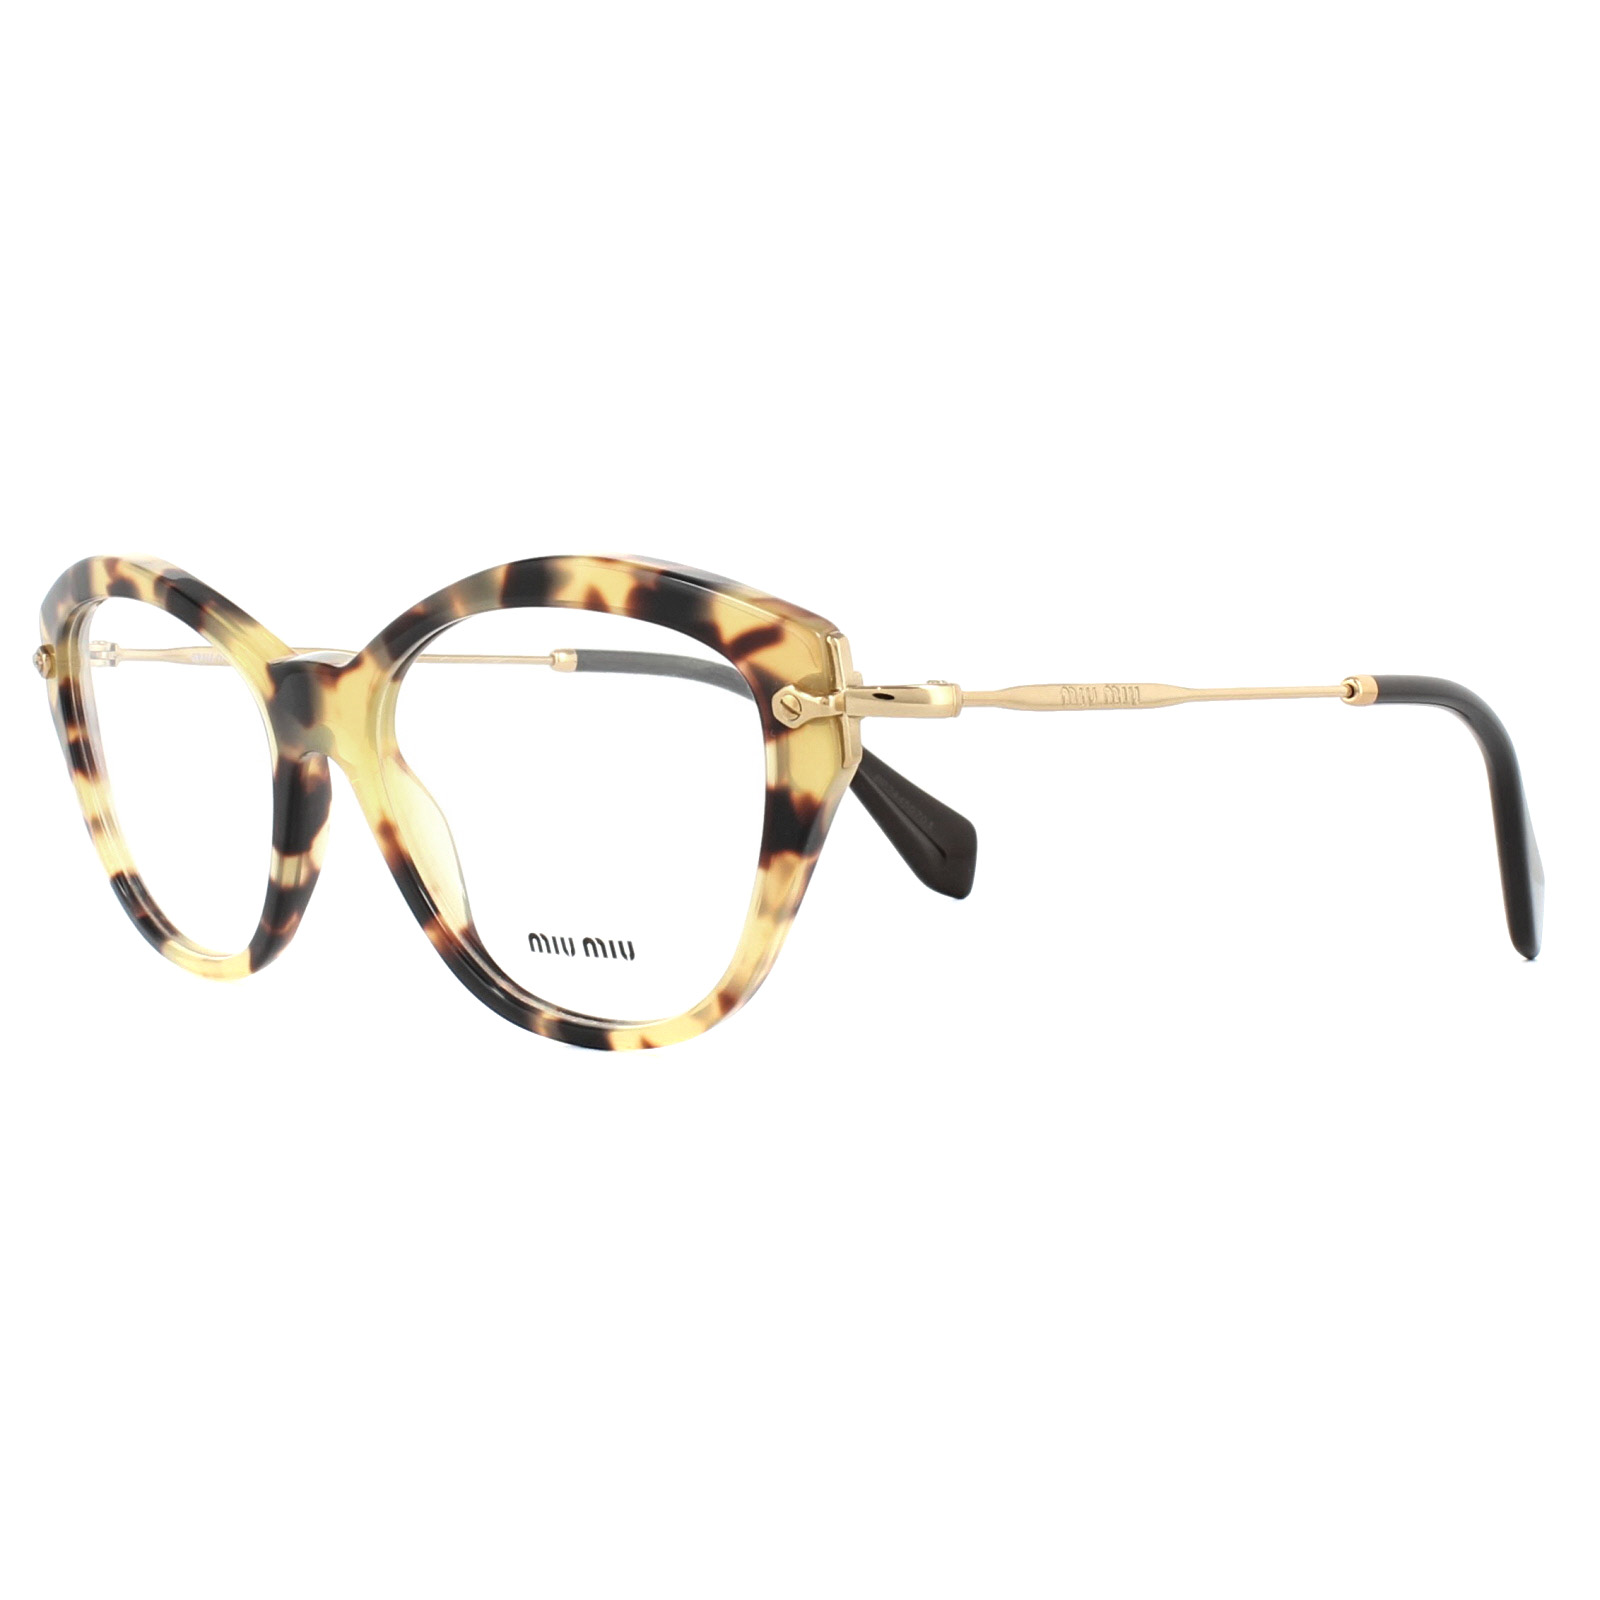 d930d971a95 Sentinel Miu Miu Glasses Frames MU02OV 7S01O1 Light Havana 54mm Womens